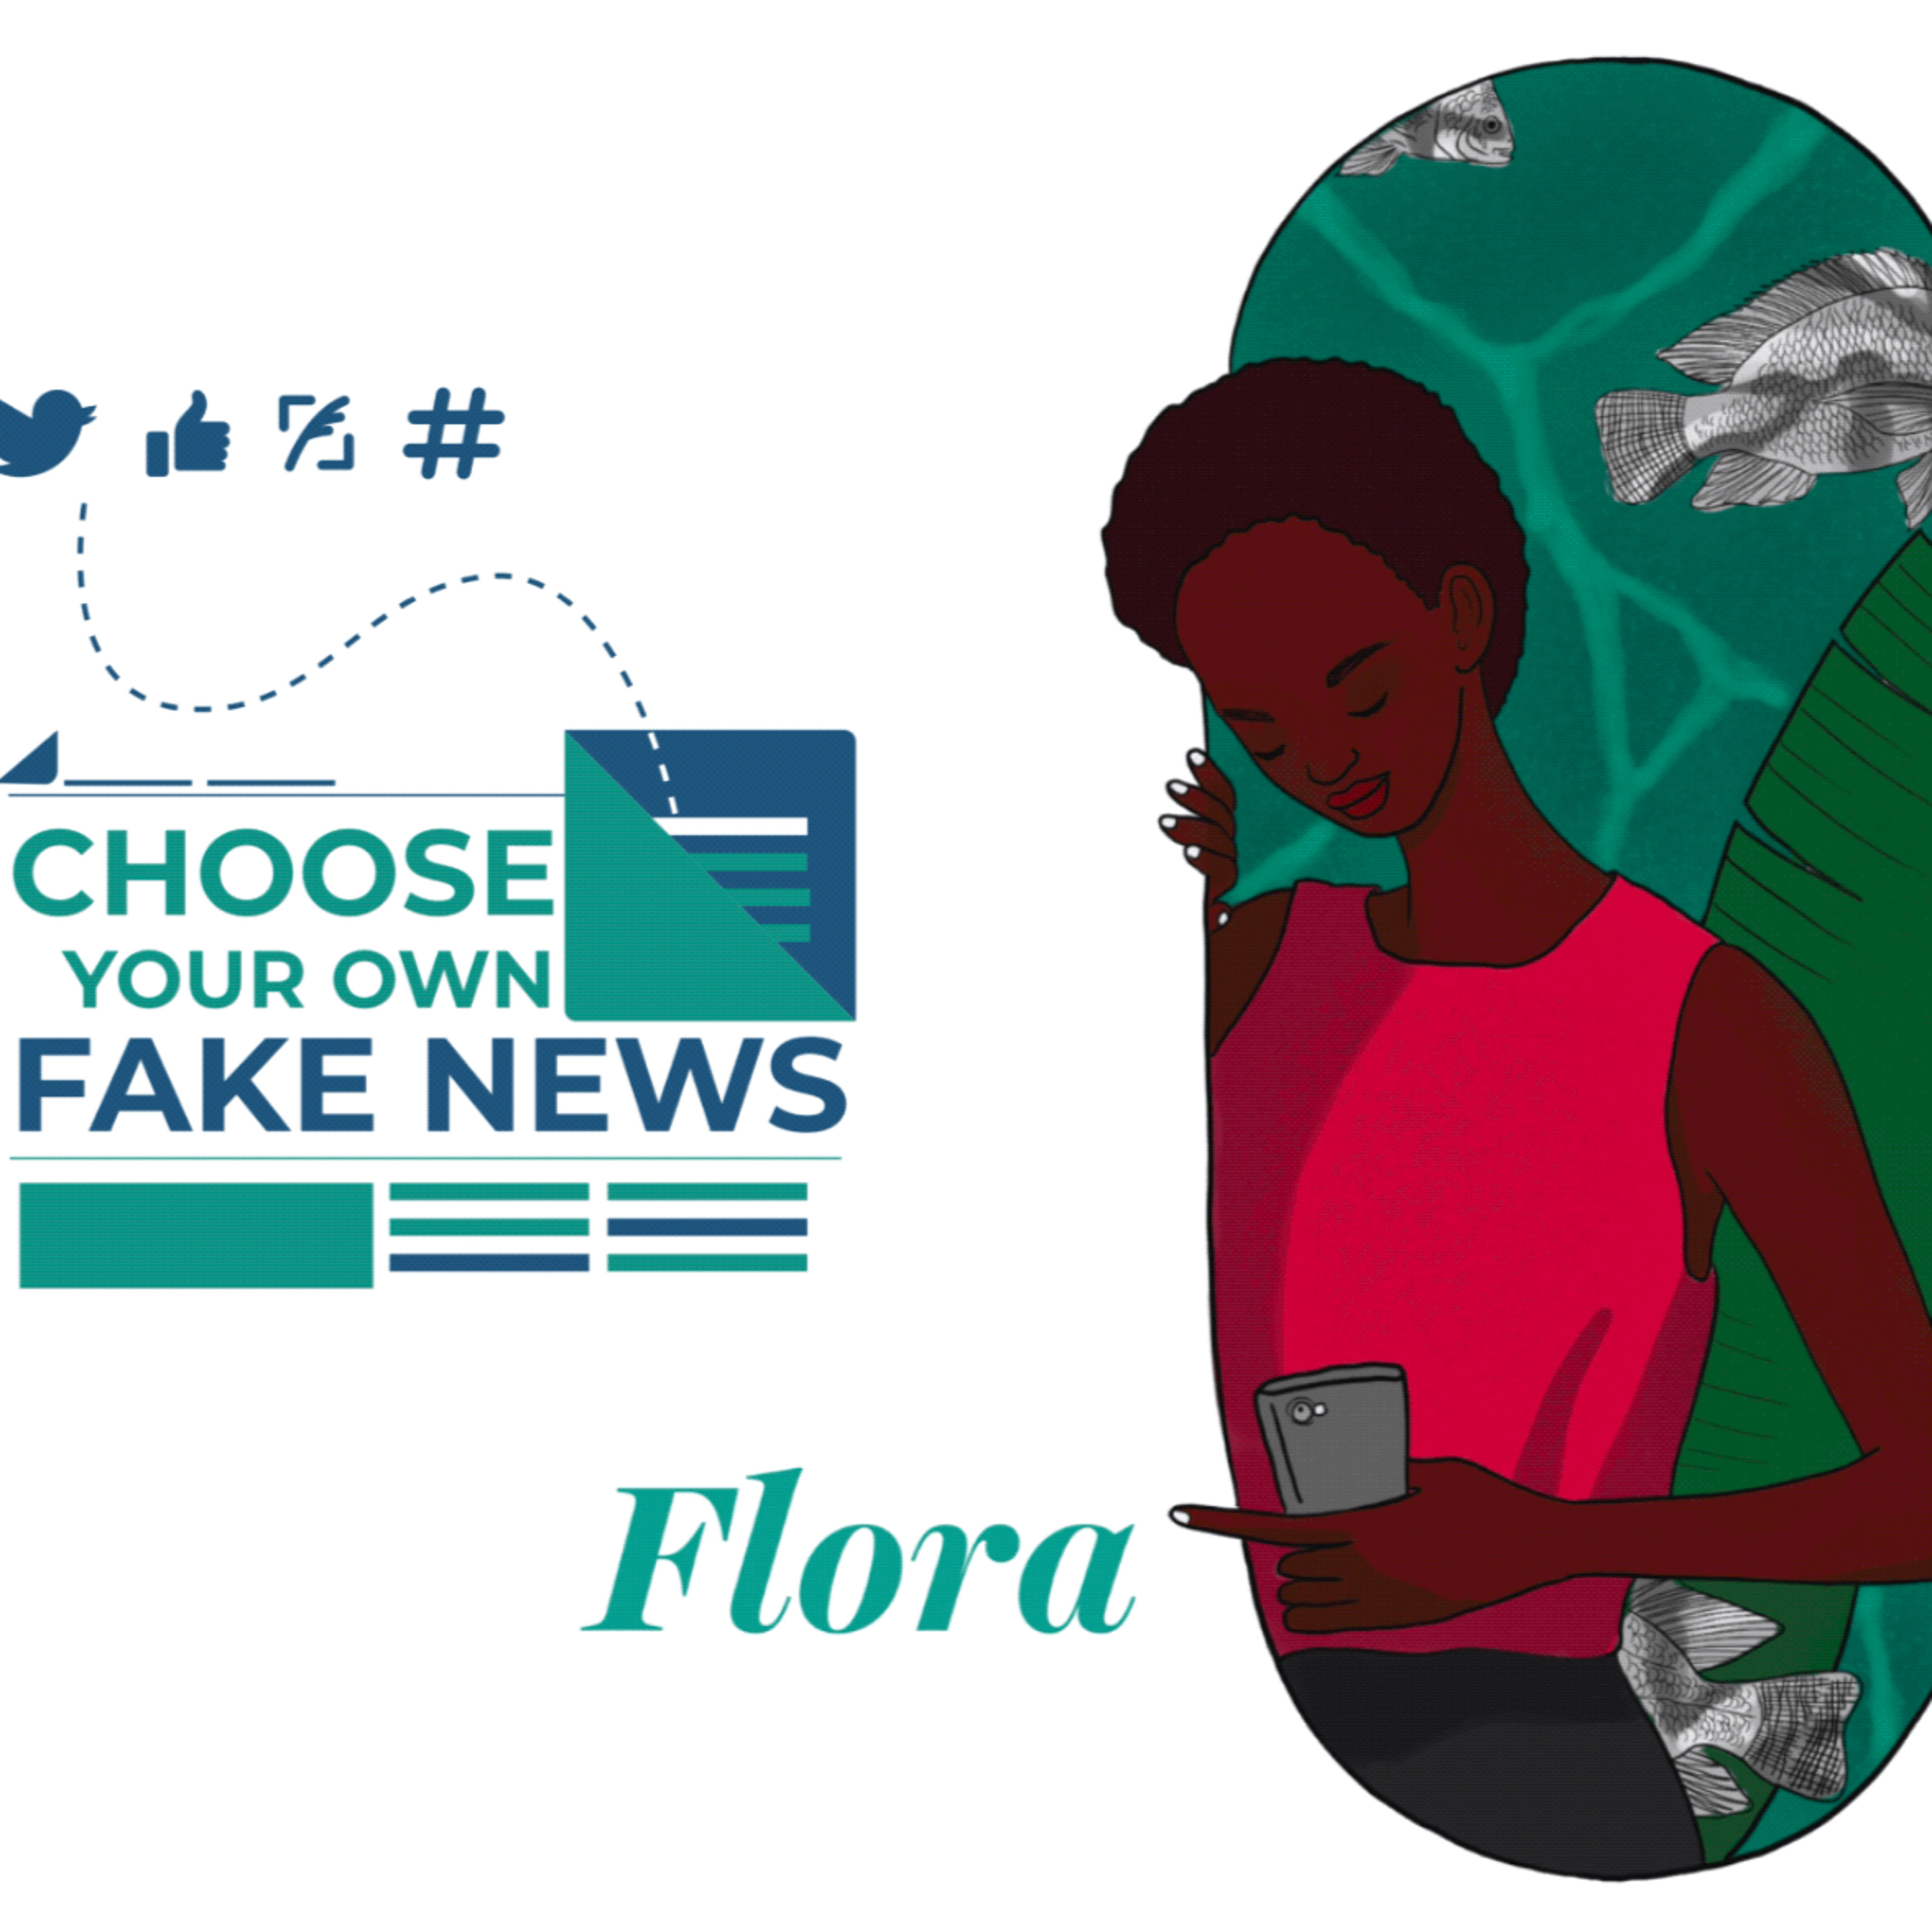 Choose Your Own Fake News!